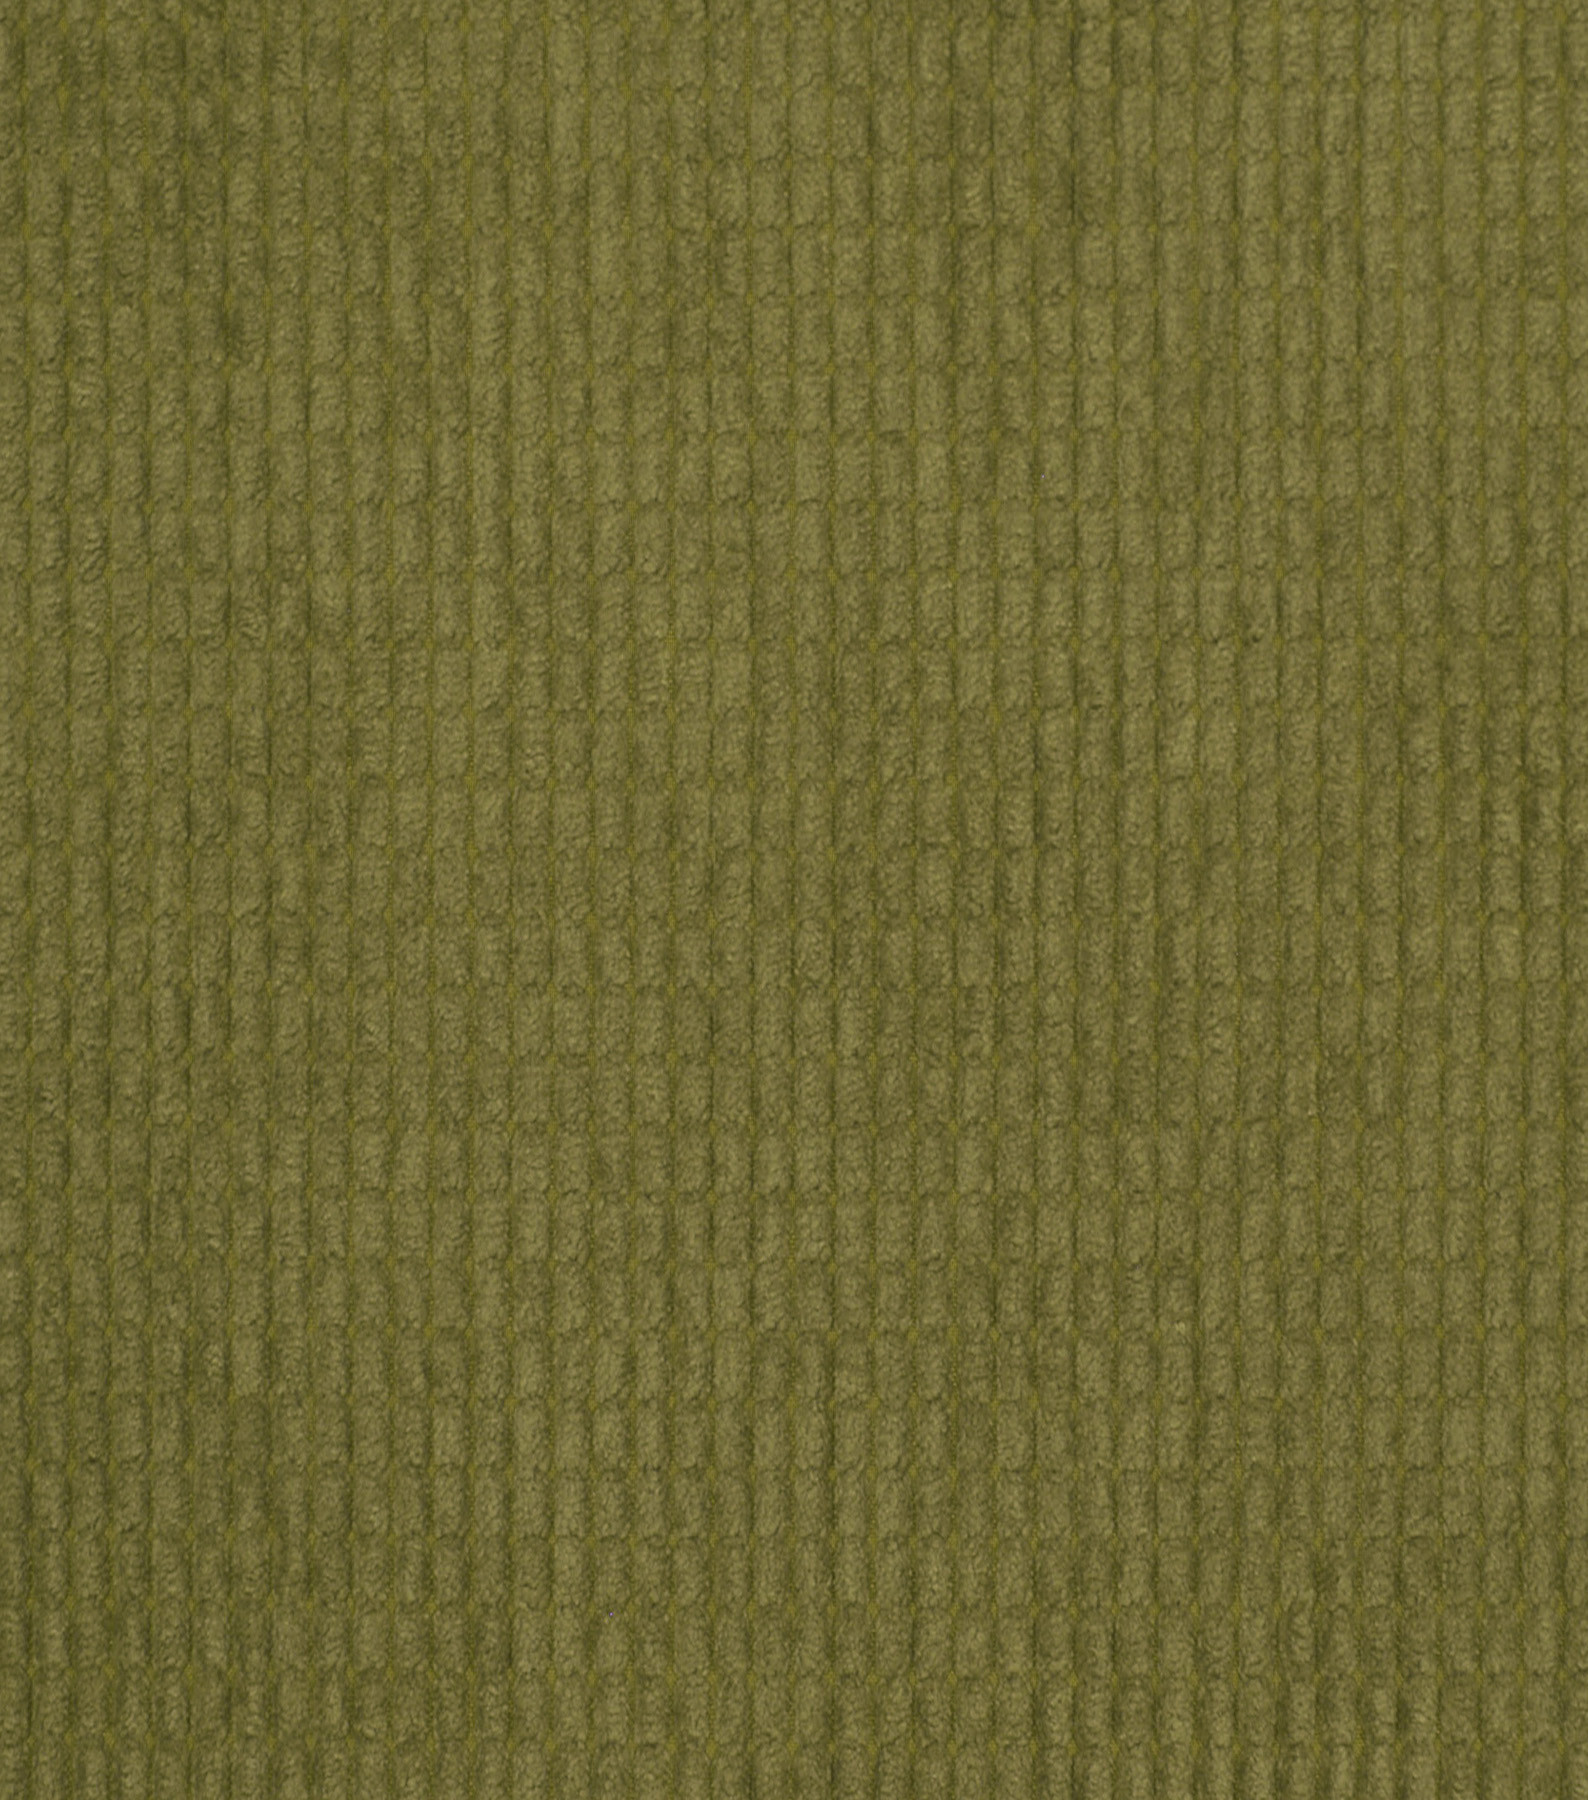 Home Decor 8\u0022x8\u0022 Fabric Swatch-Solid Fabric Signature Series Eastfield Fennel